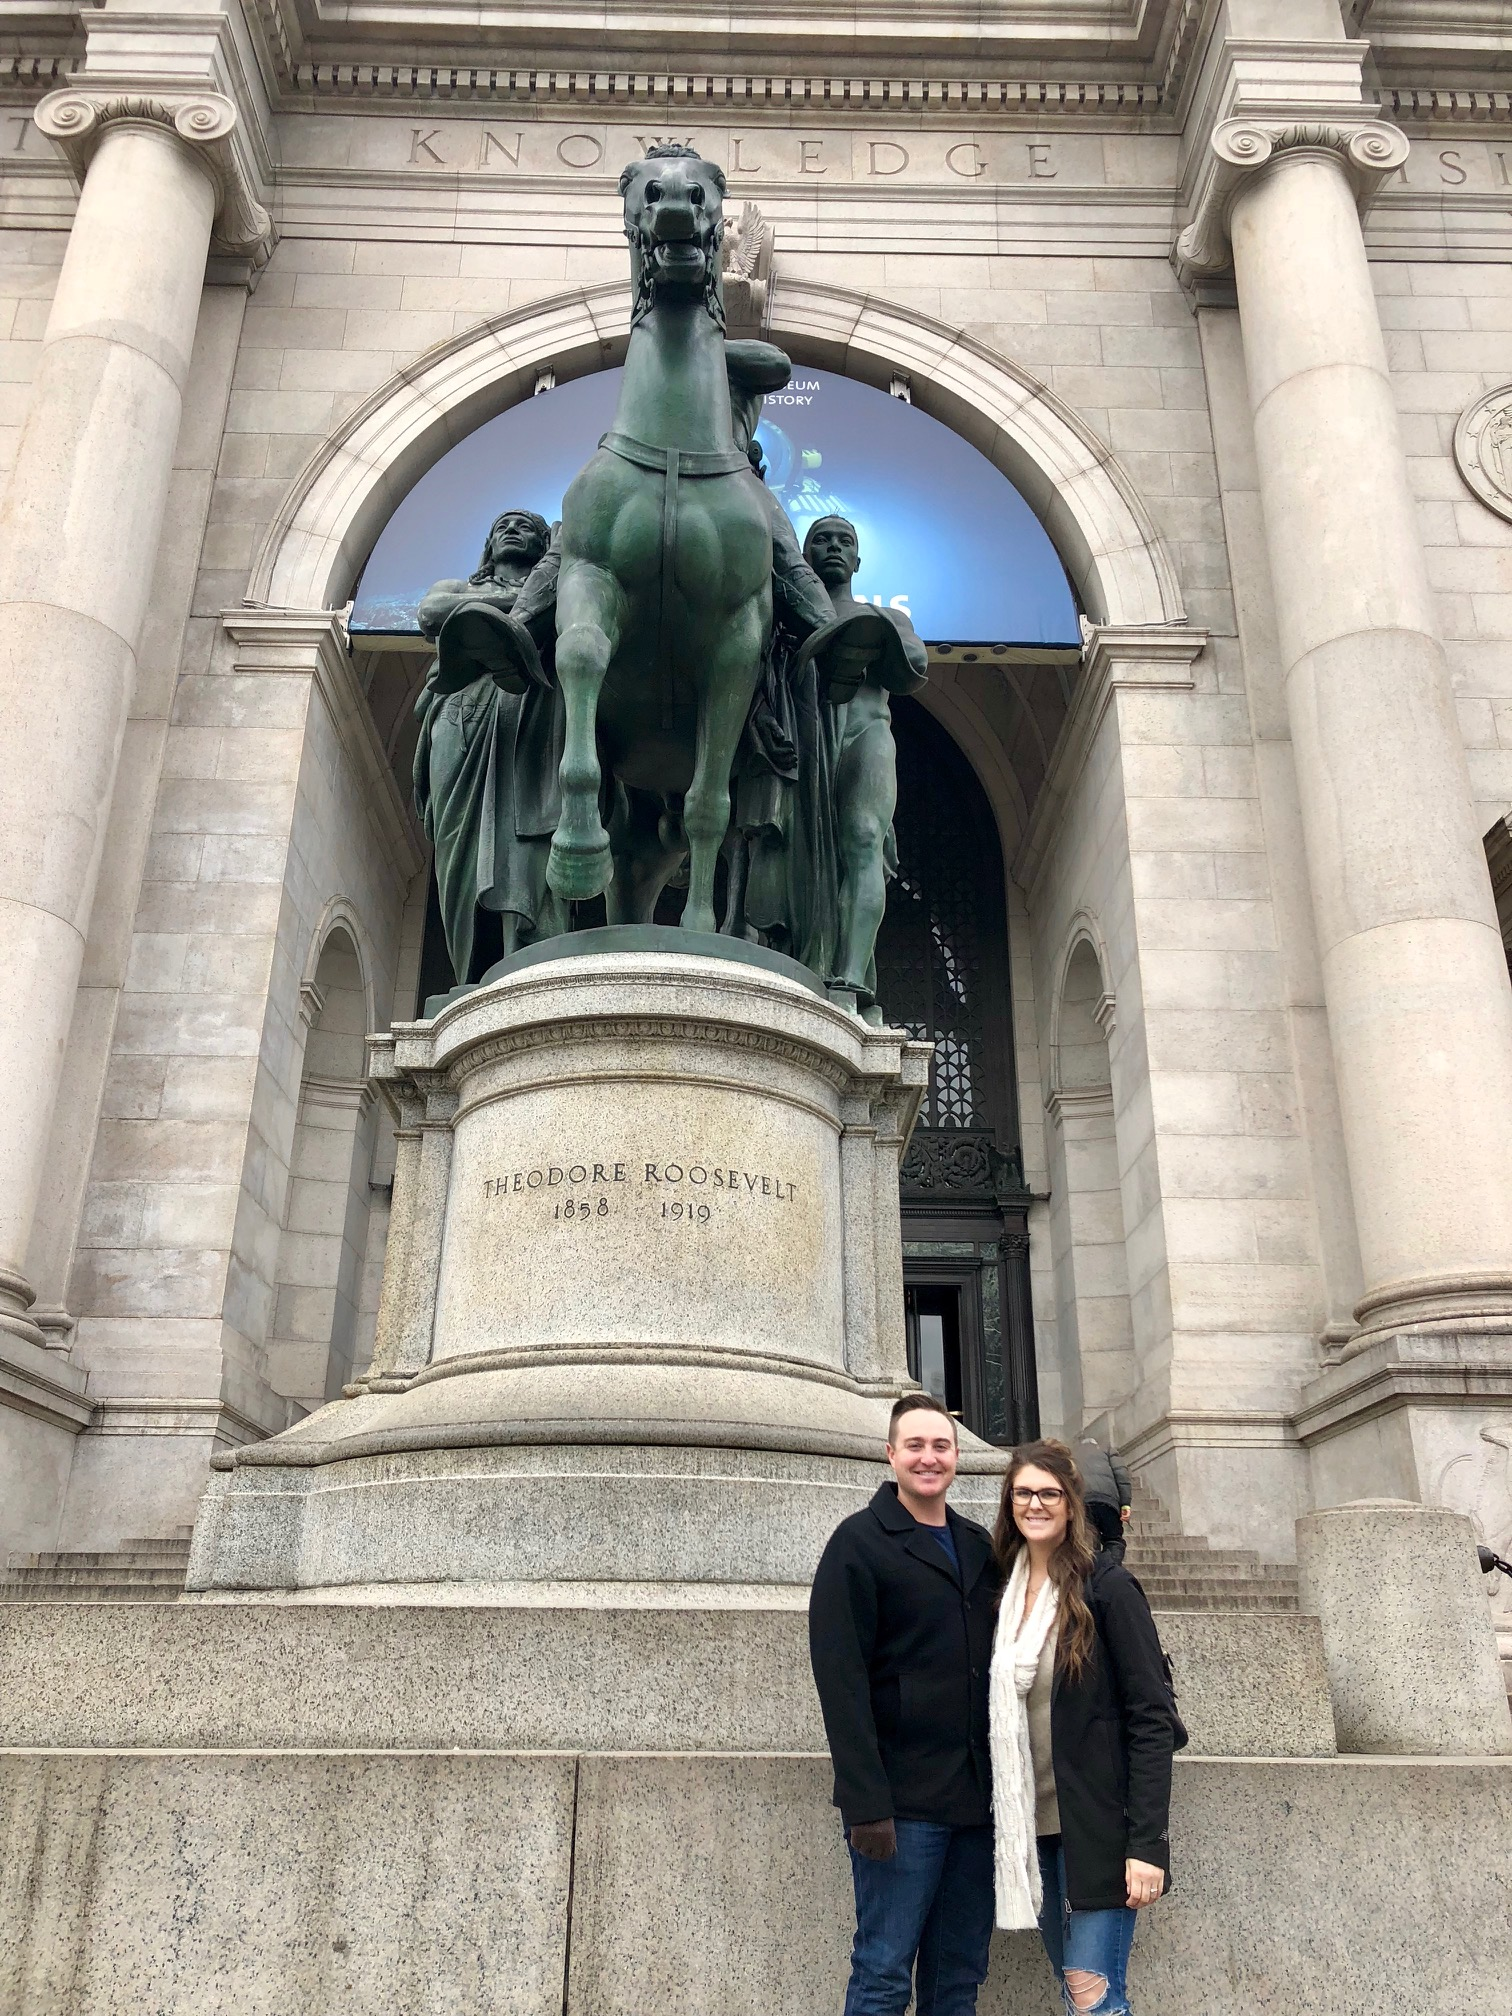 My wife and I in front of the American Museum of Natural History.